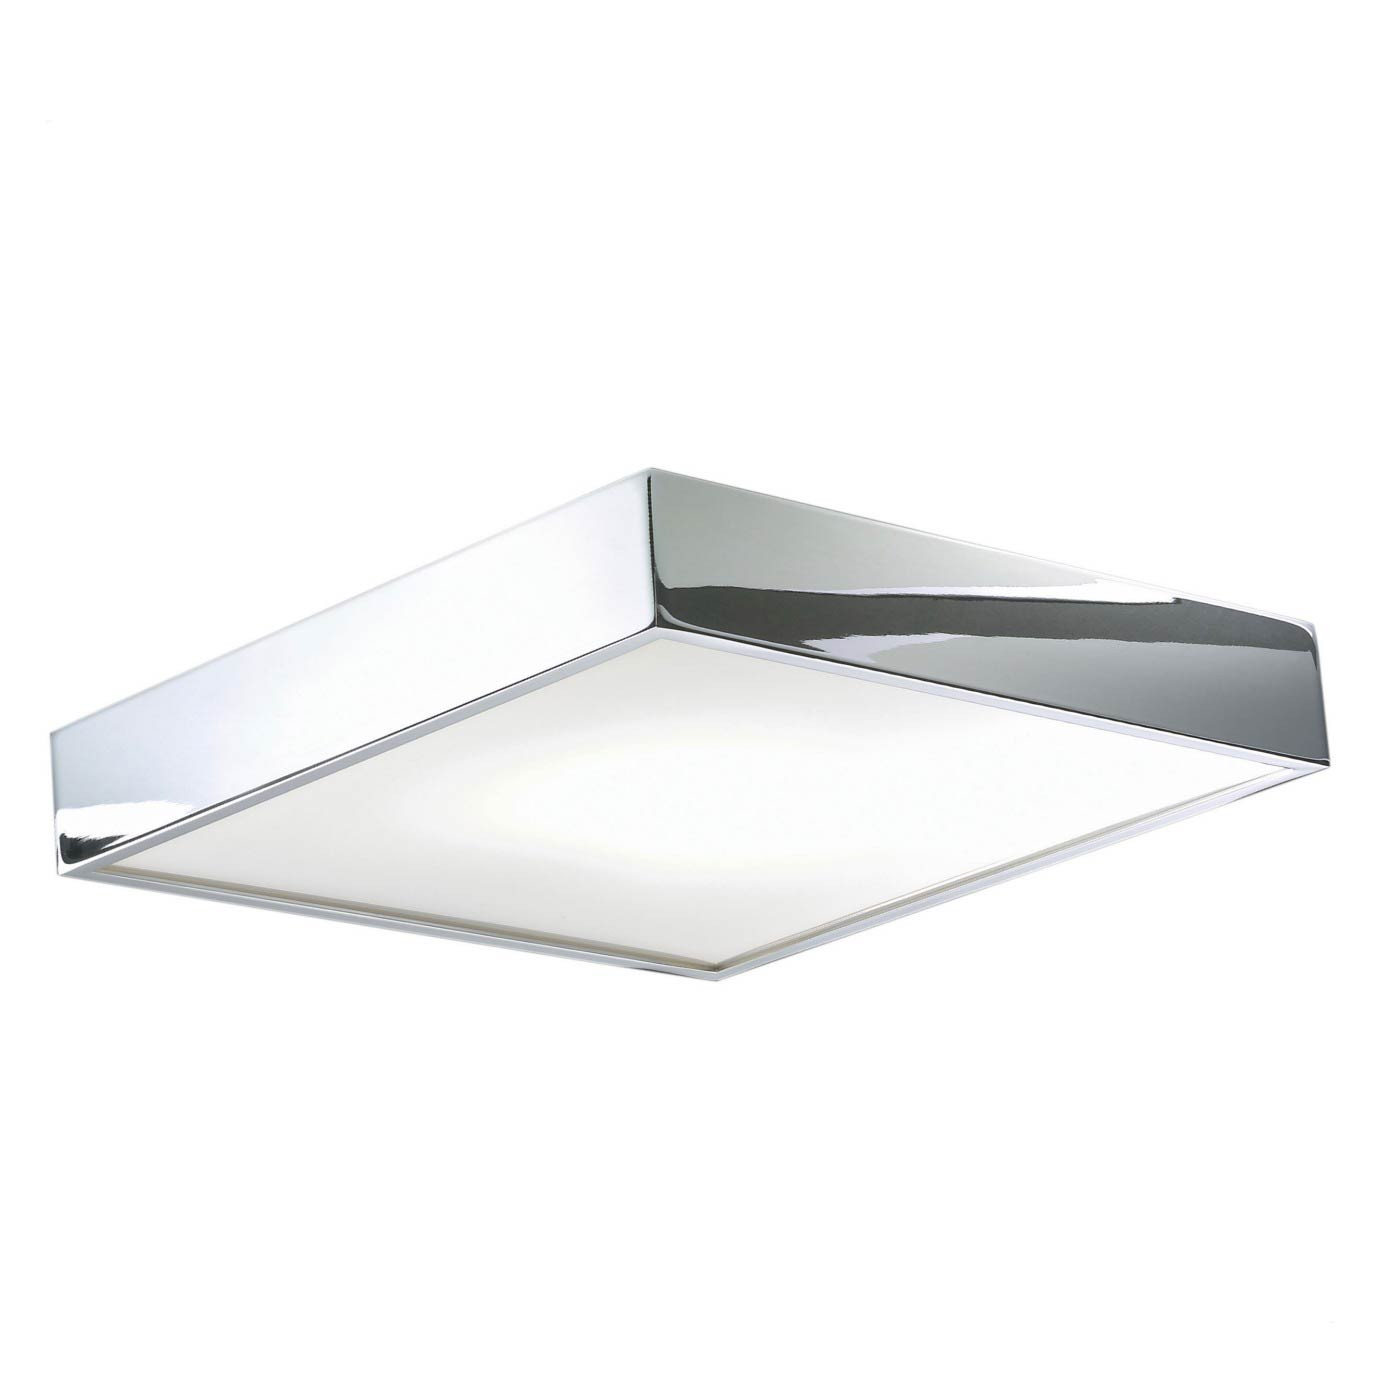 Decor Walther Cut 10 Ceiling Light